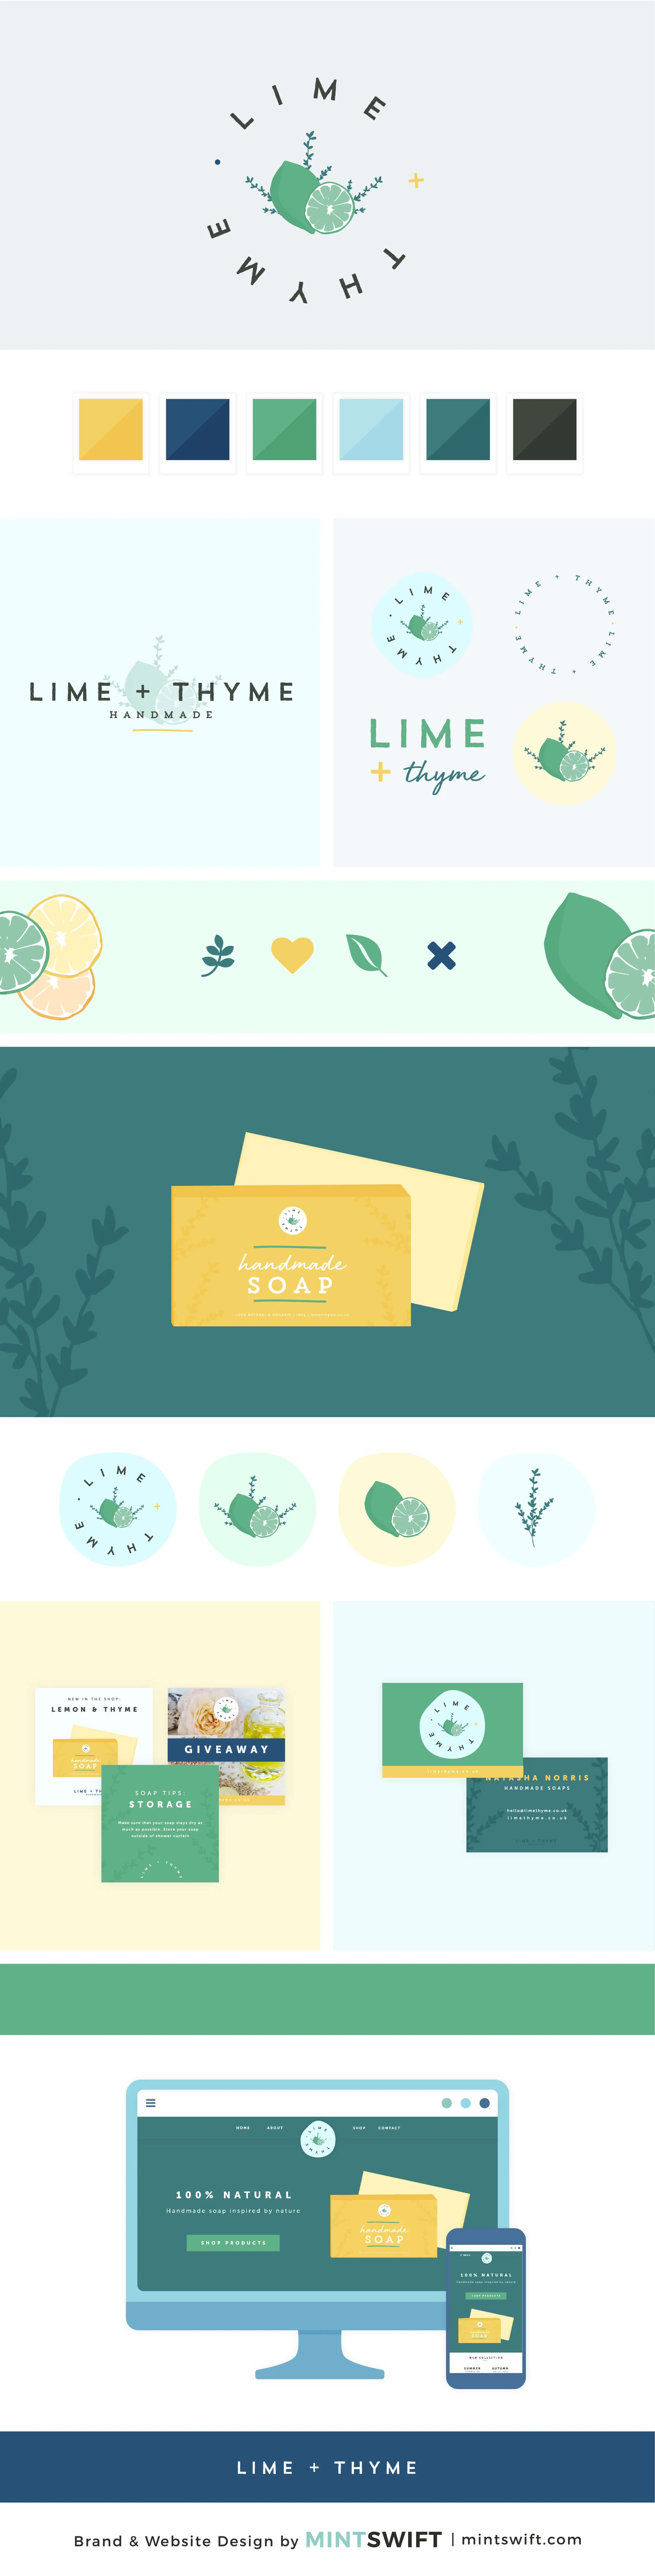 Lime + Thyme - Brand & Website Design Package by MintSwift